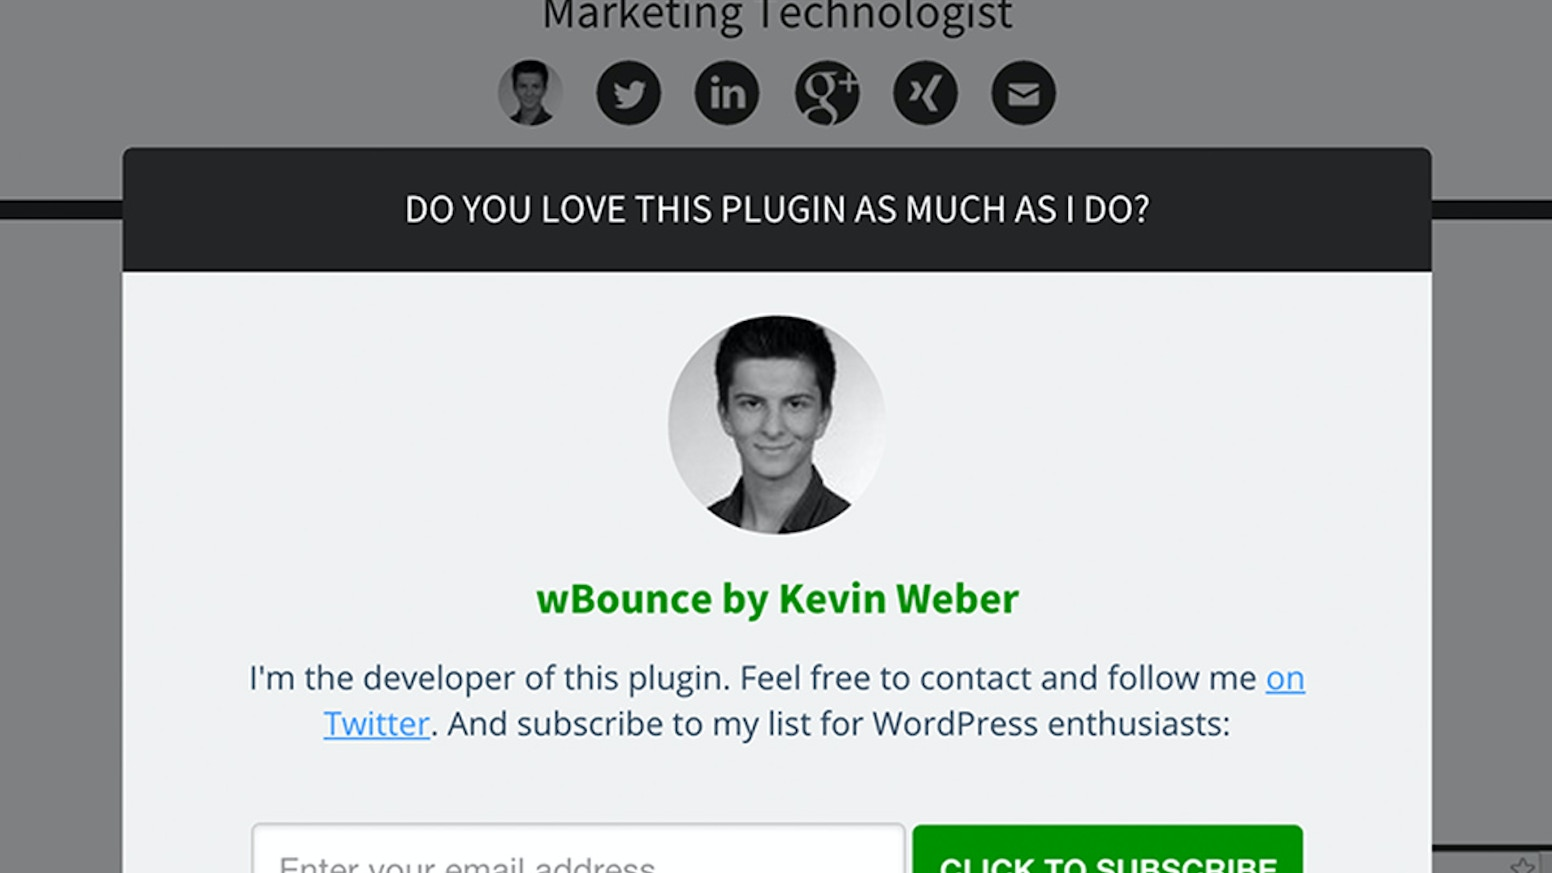 Override the default popup per page! This feature enhances the free exit popup plugin wBounce from WordPress.org